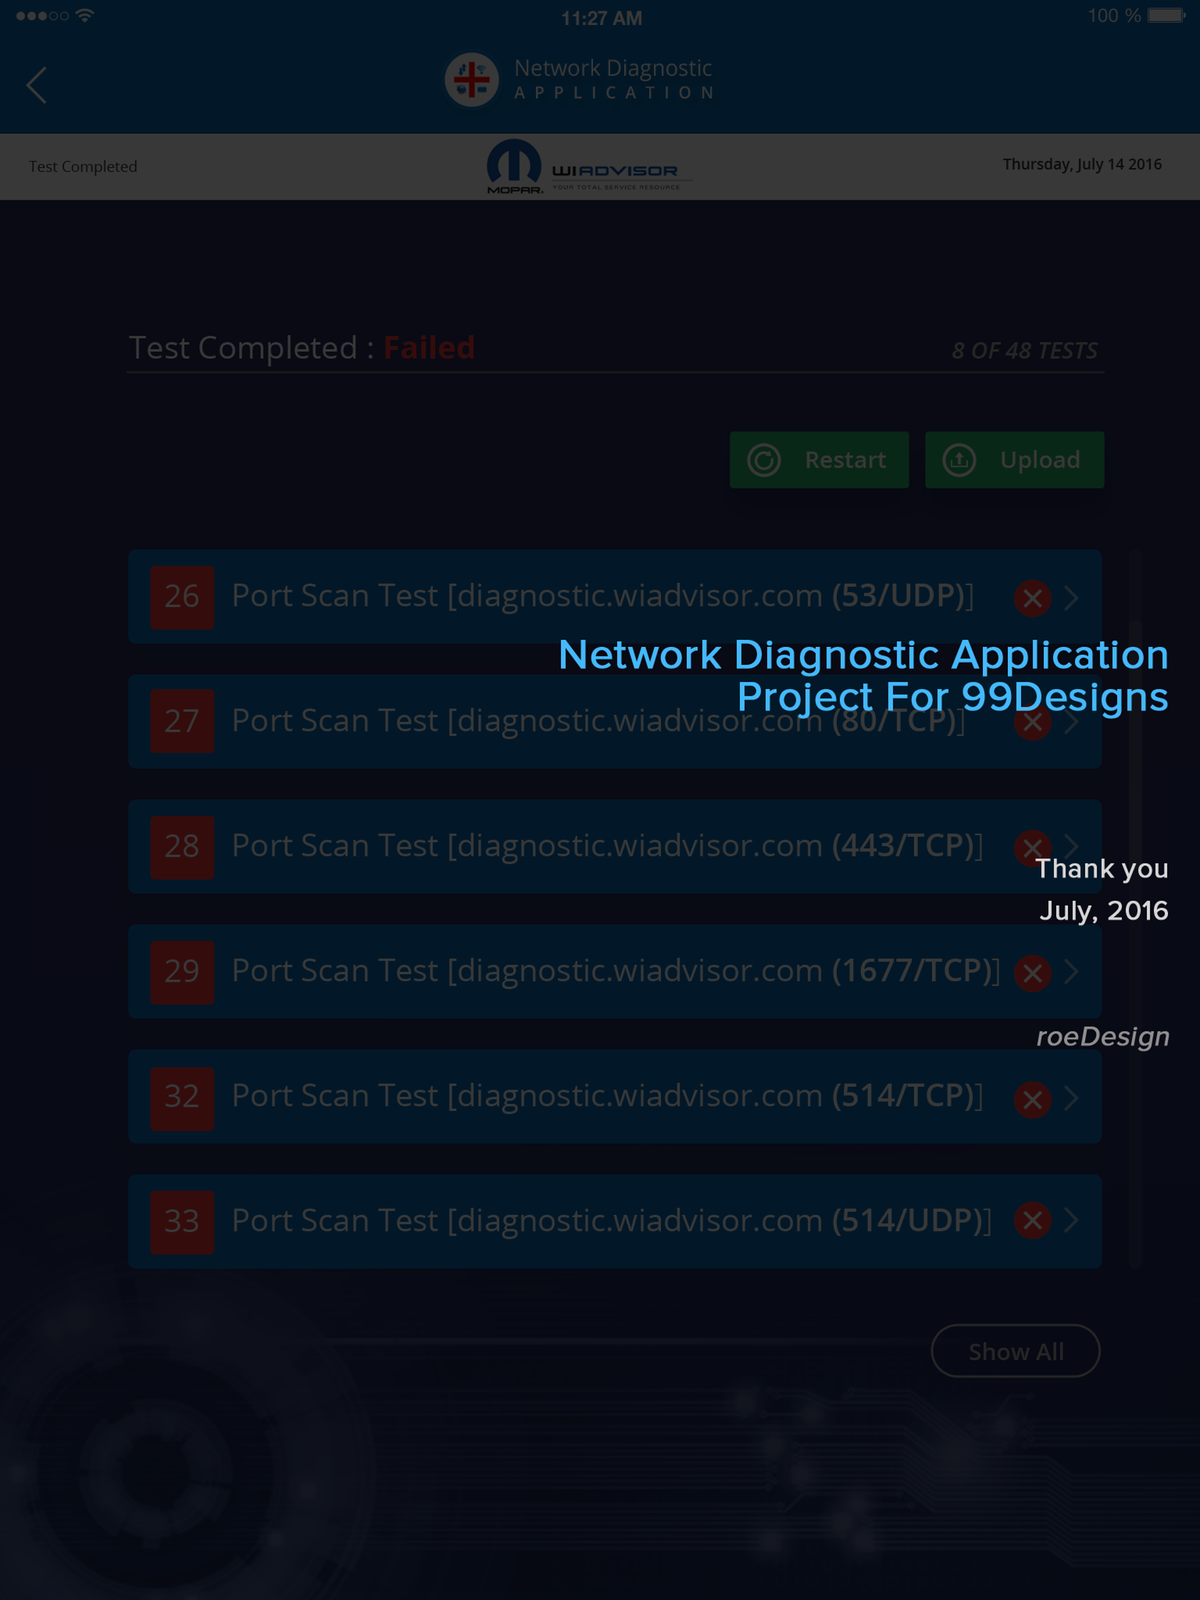 Network Diagnostic Application Results page